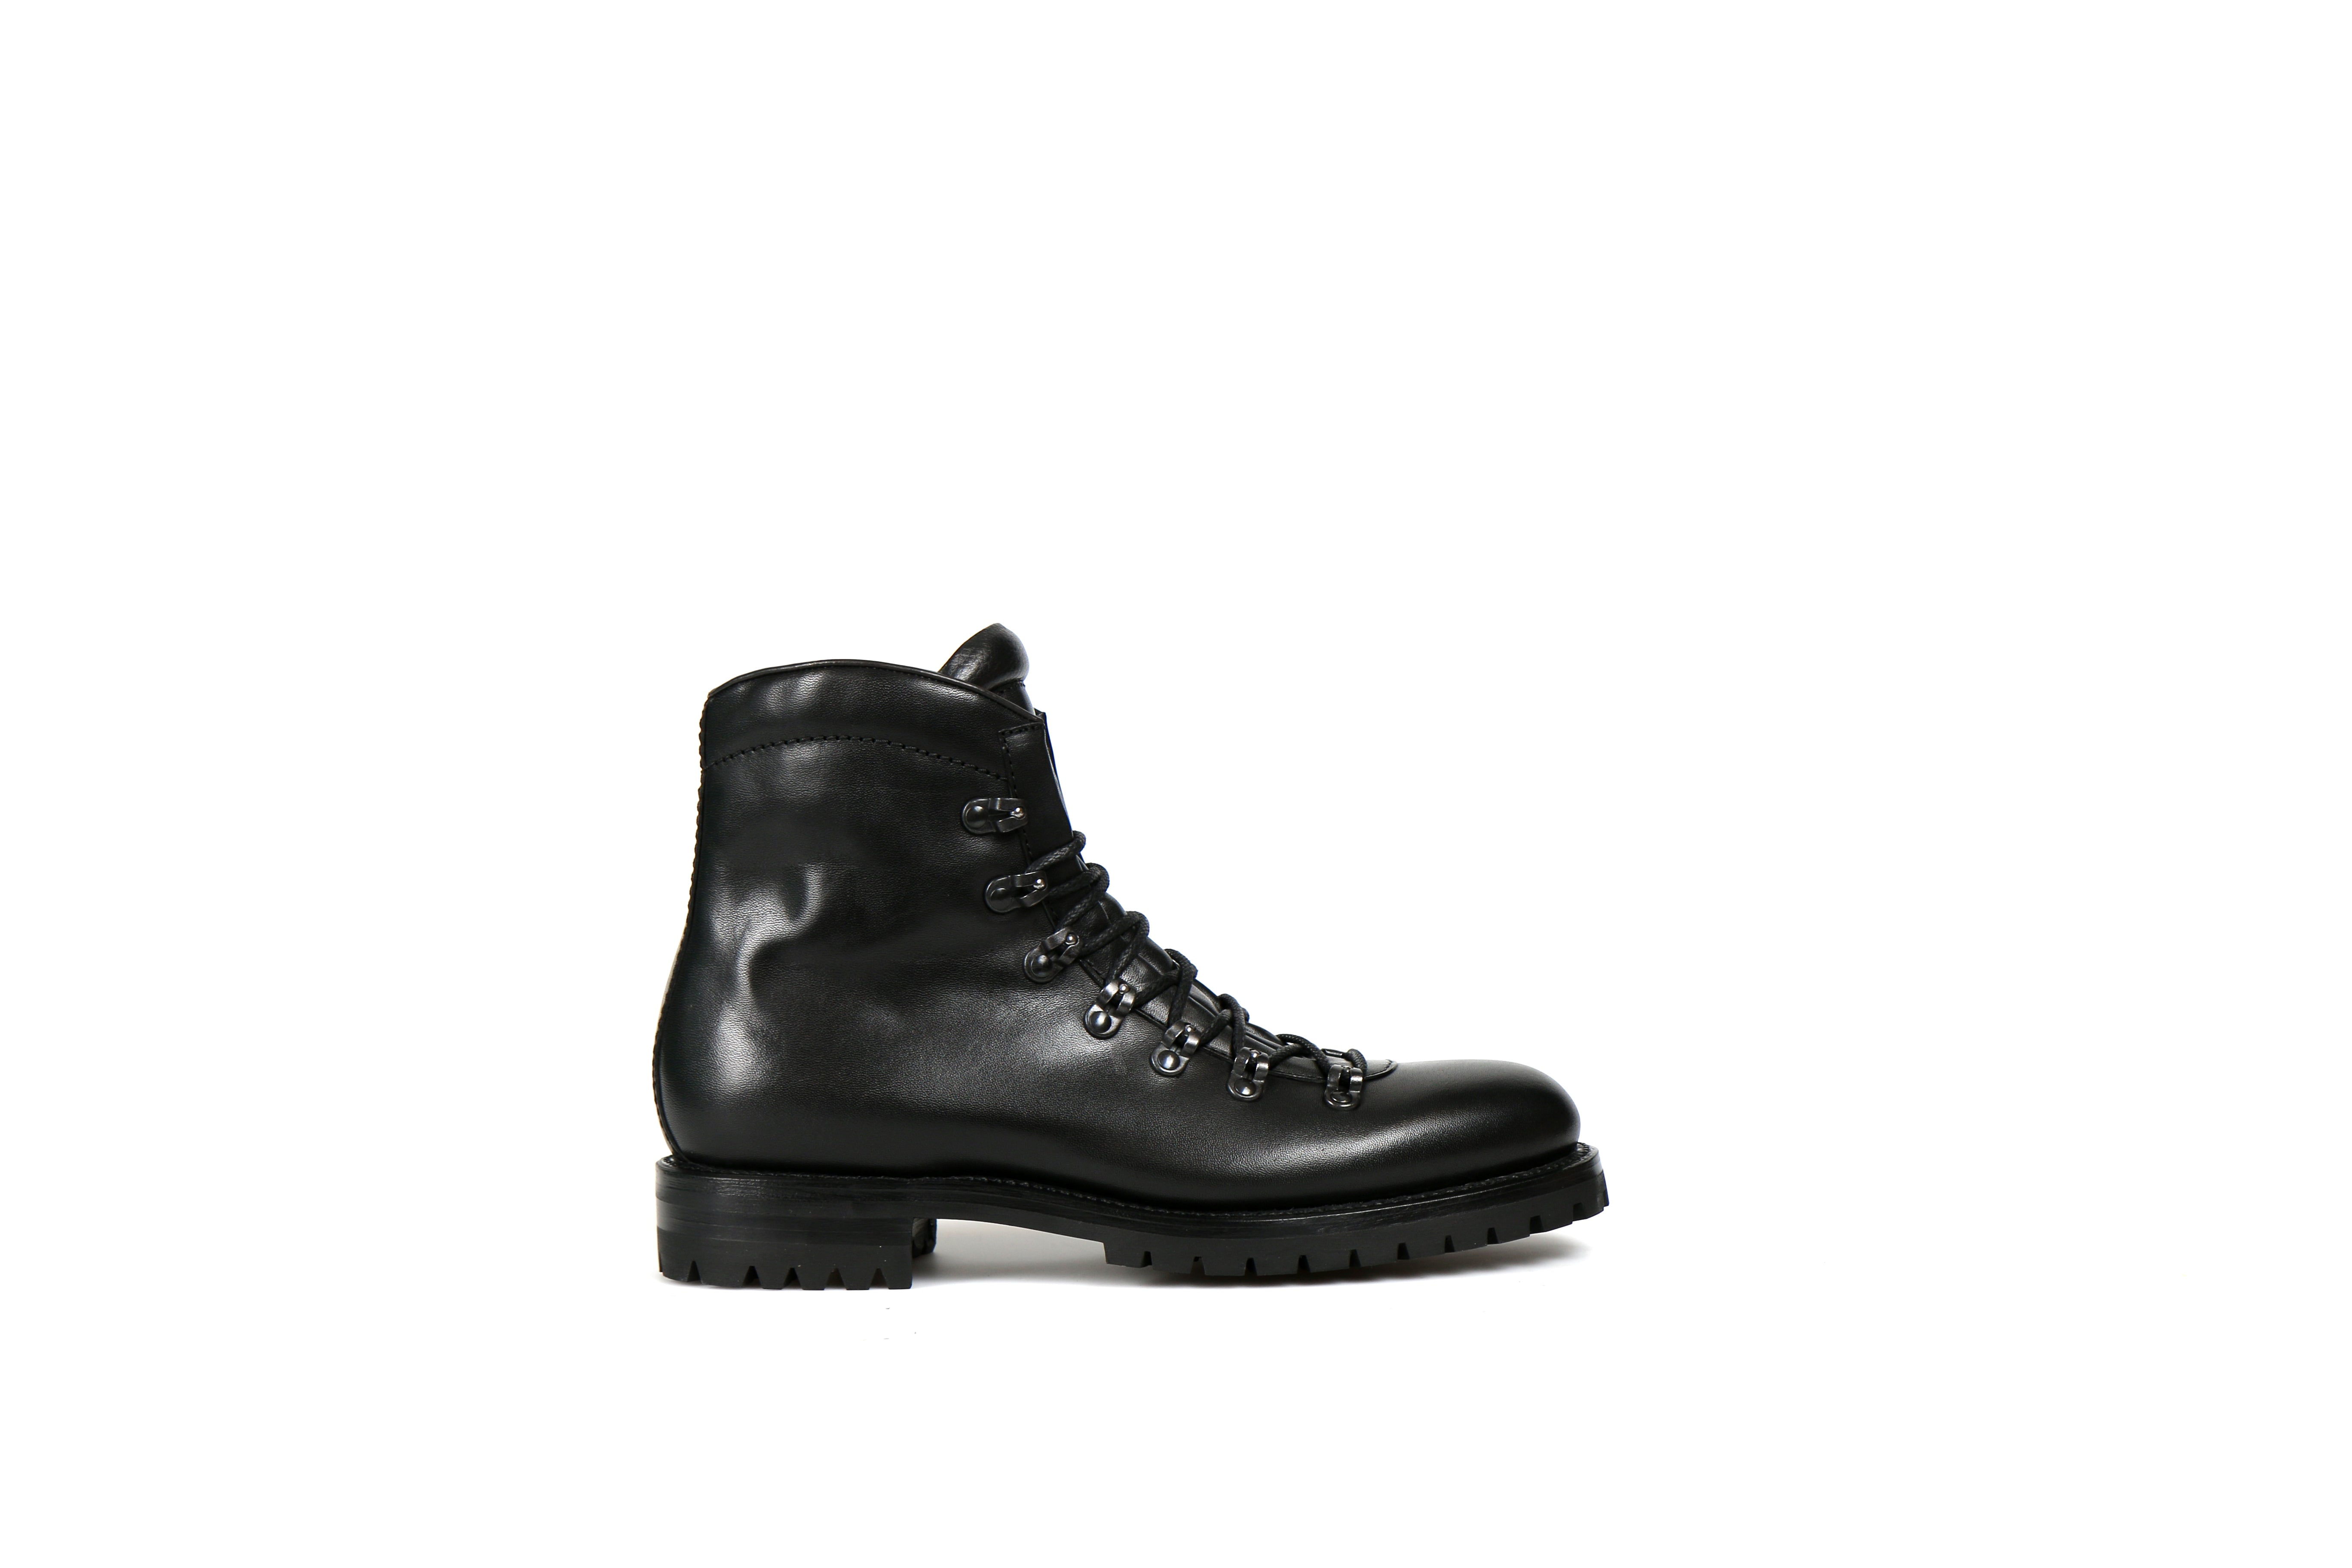 Kings Black Cordovan Leather Hiking Boot